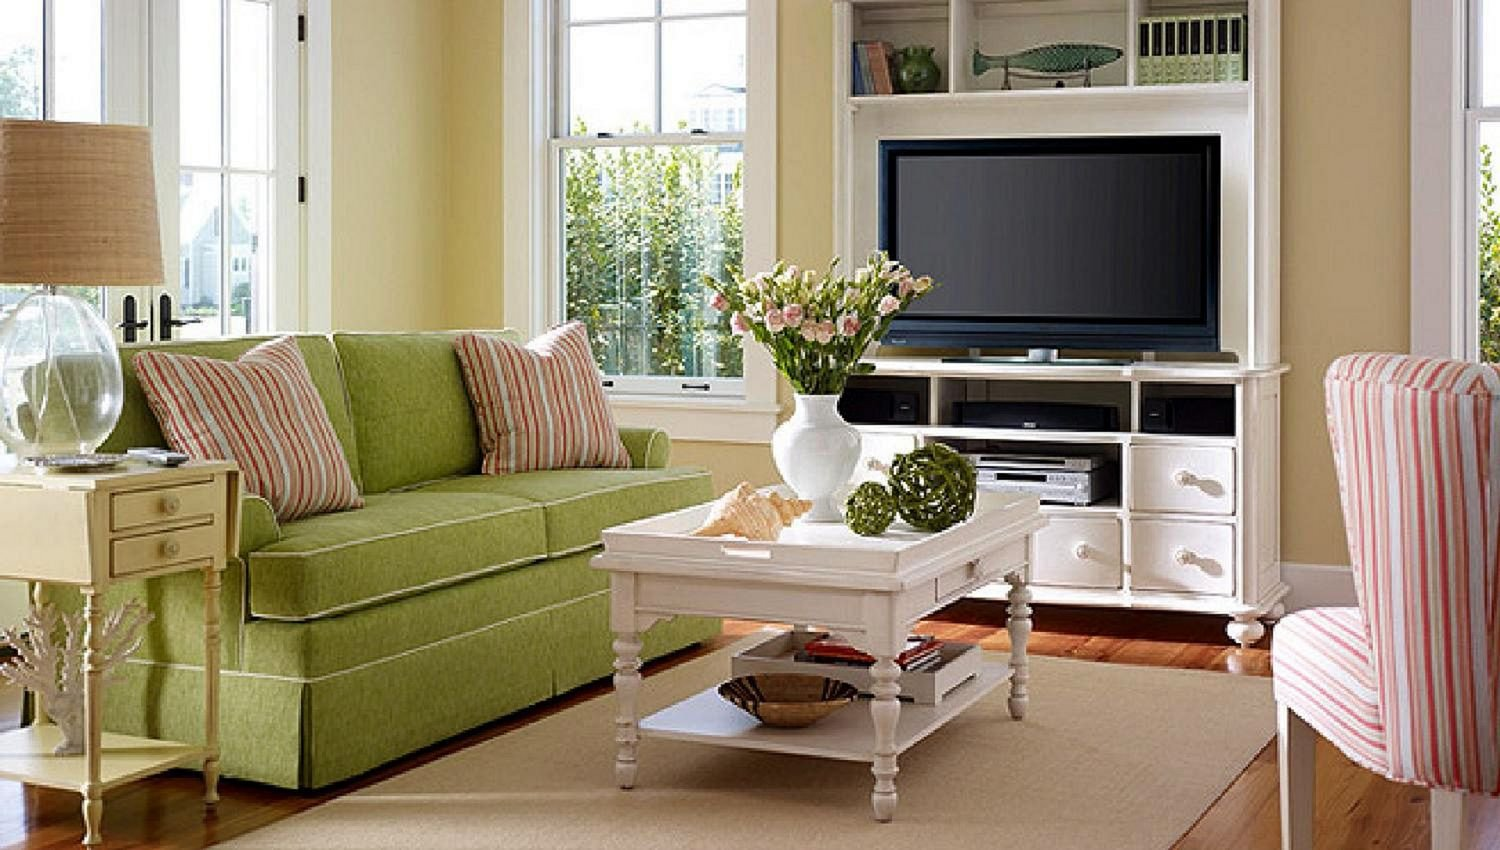 Cute Small Living Room Ideas Cute Small Living Room Ideas Cute Small Living Room Ideas